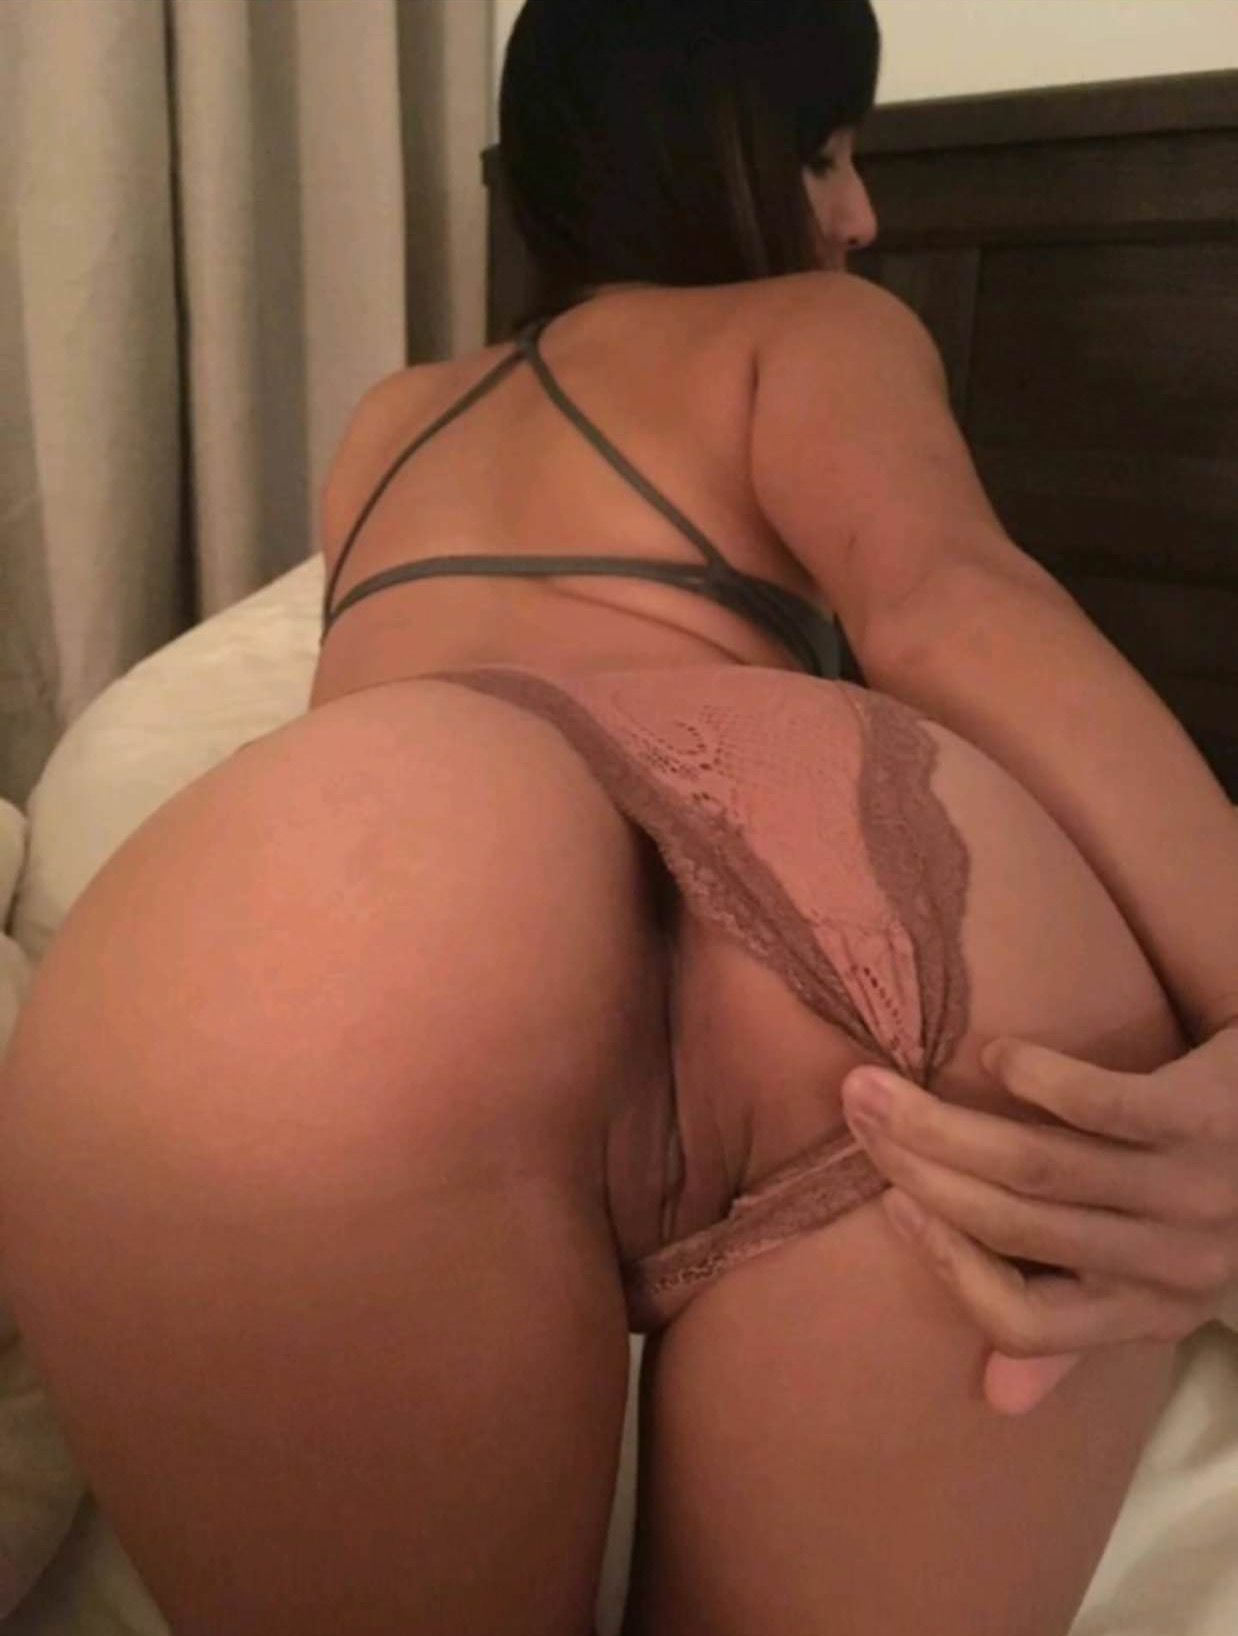 FULL VIDEO: Cynthia Bunnay Sex Tape Snapchat Patreon Leaked!